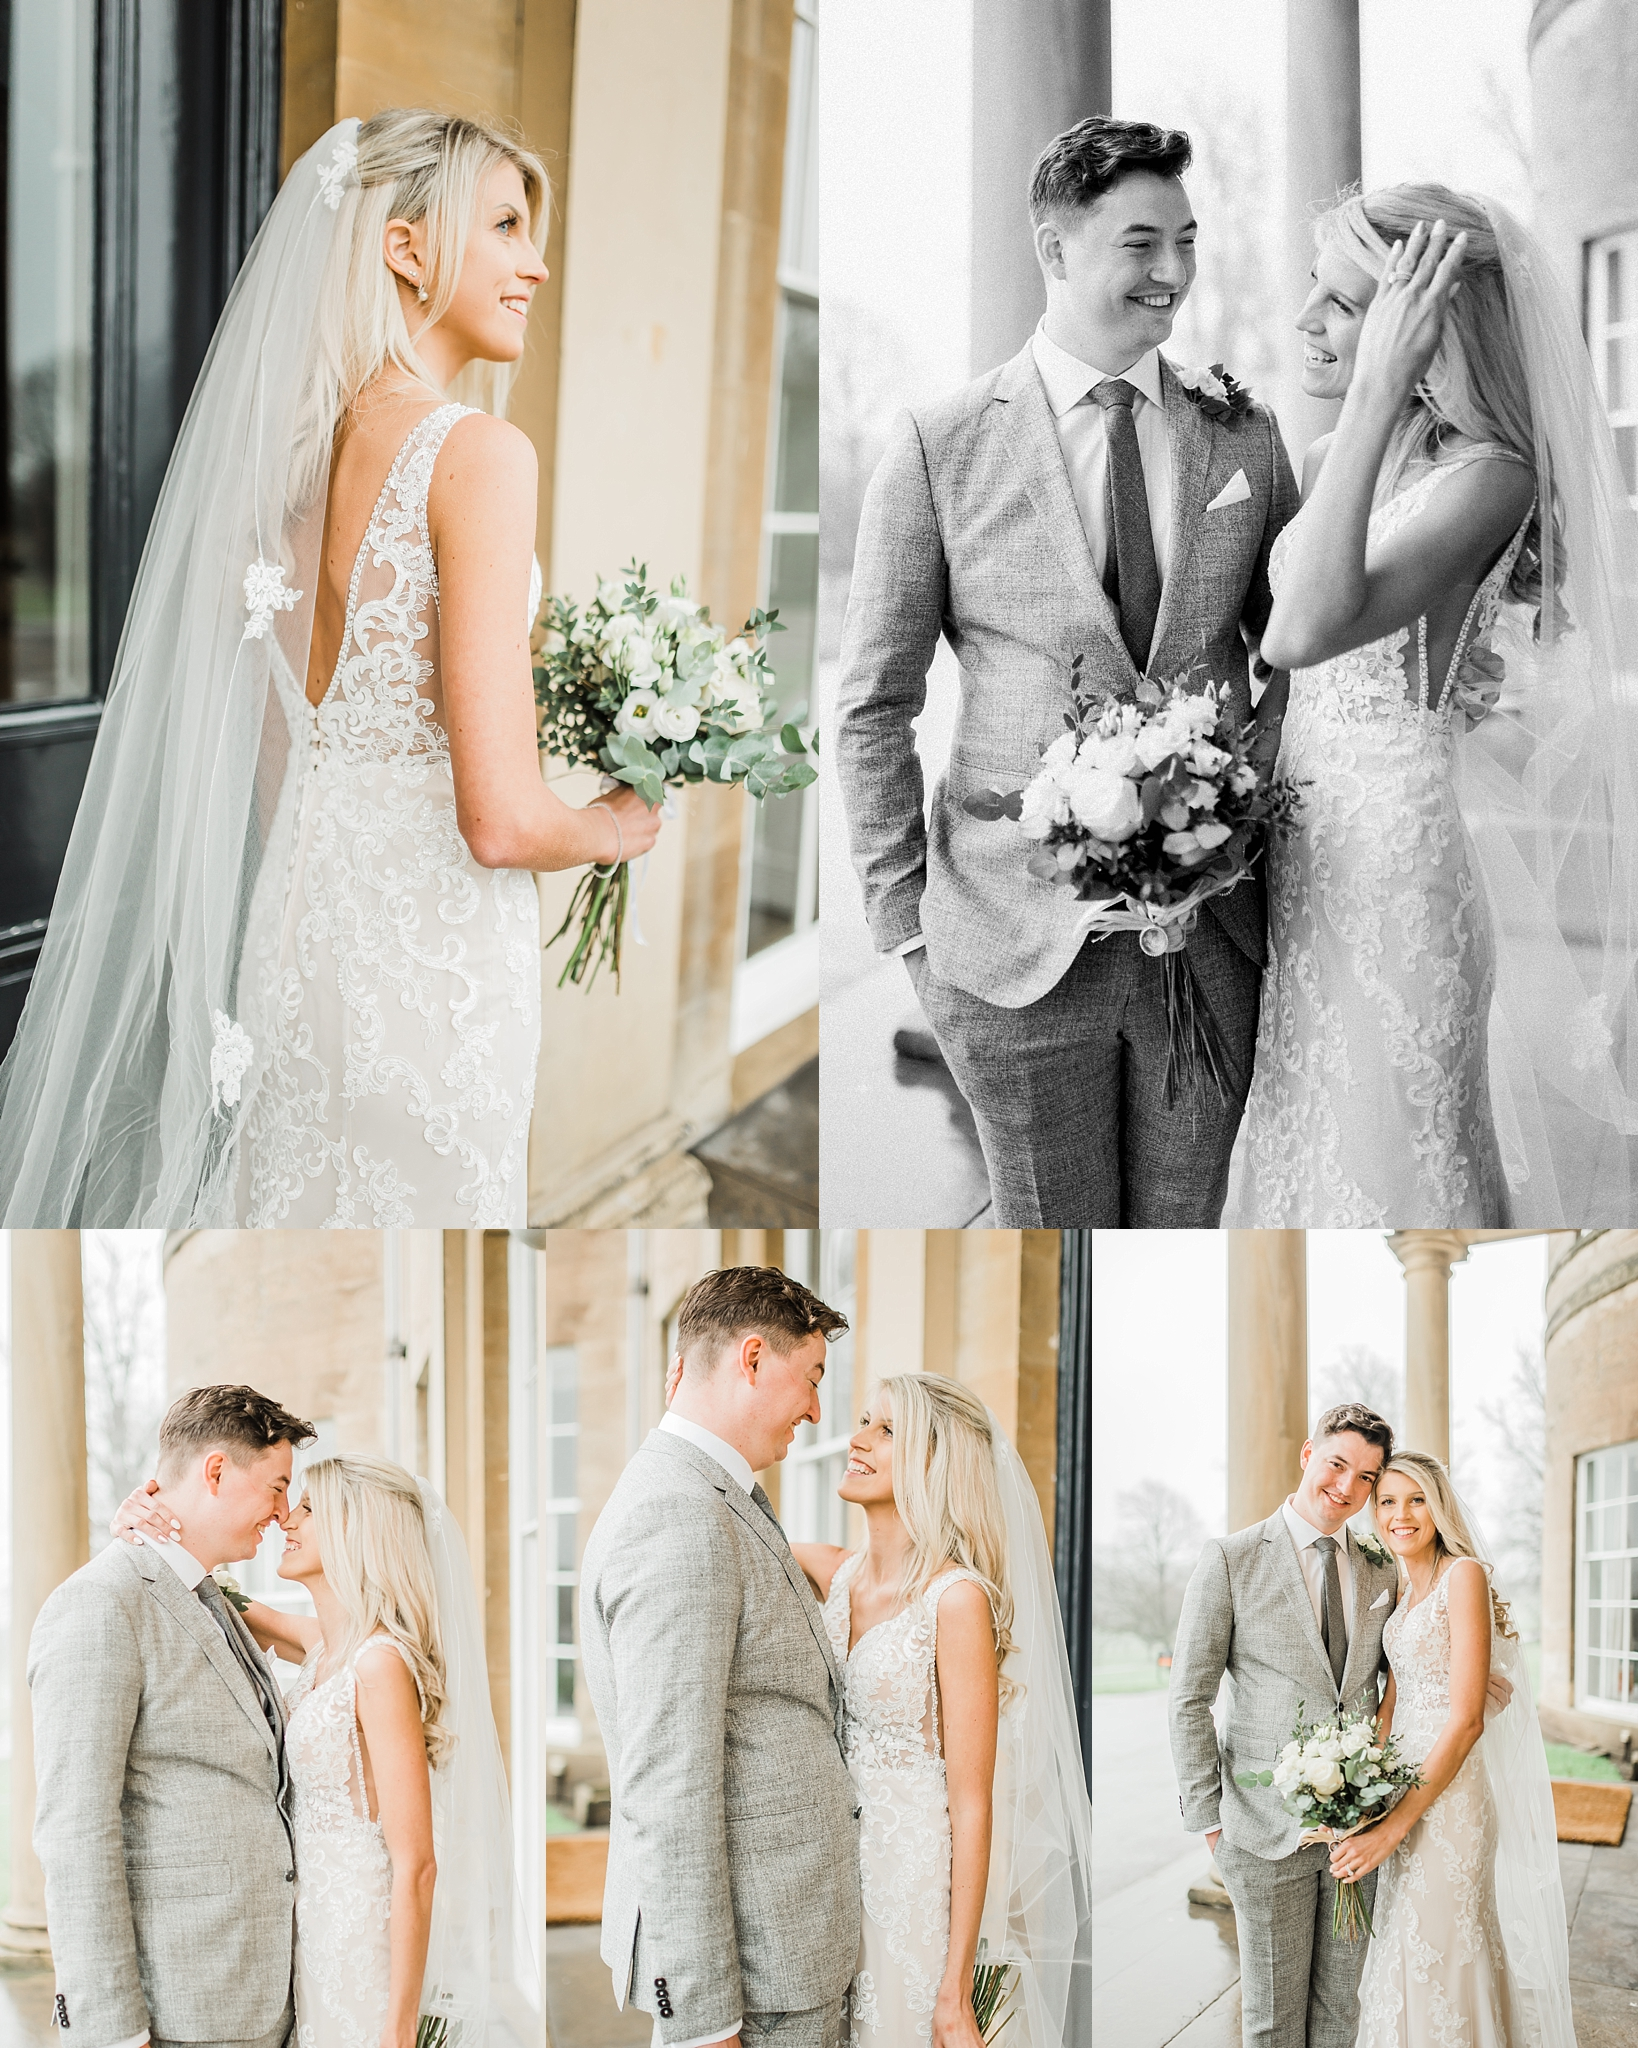 Fine Art Wedding Photographer Harrogate